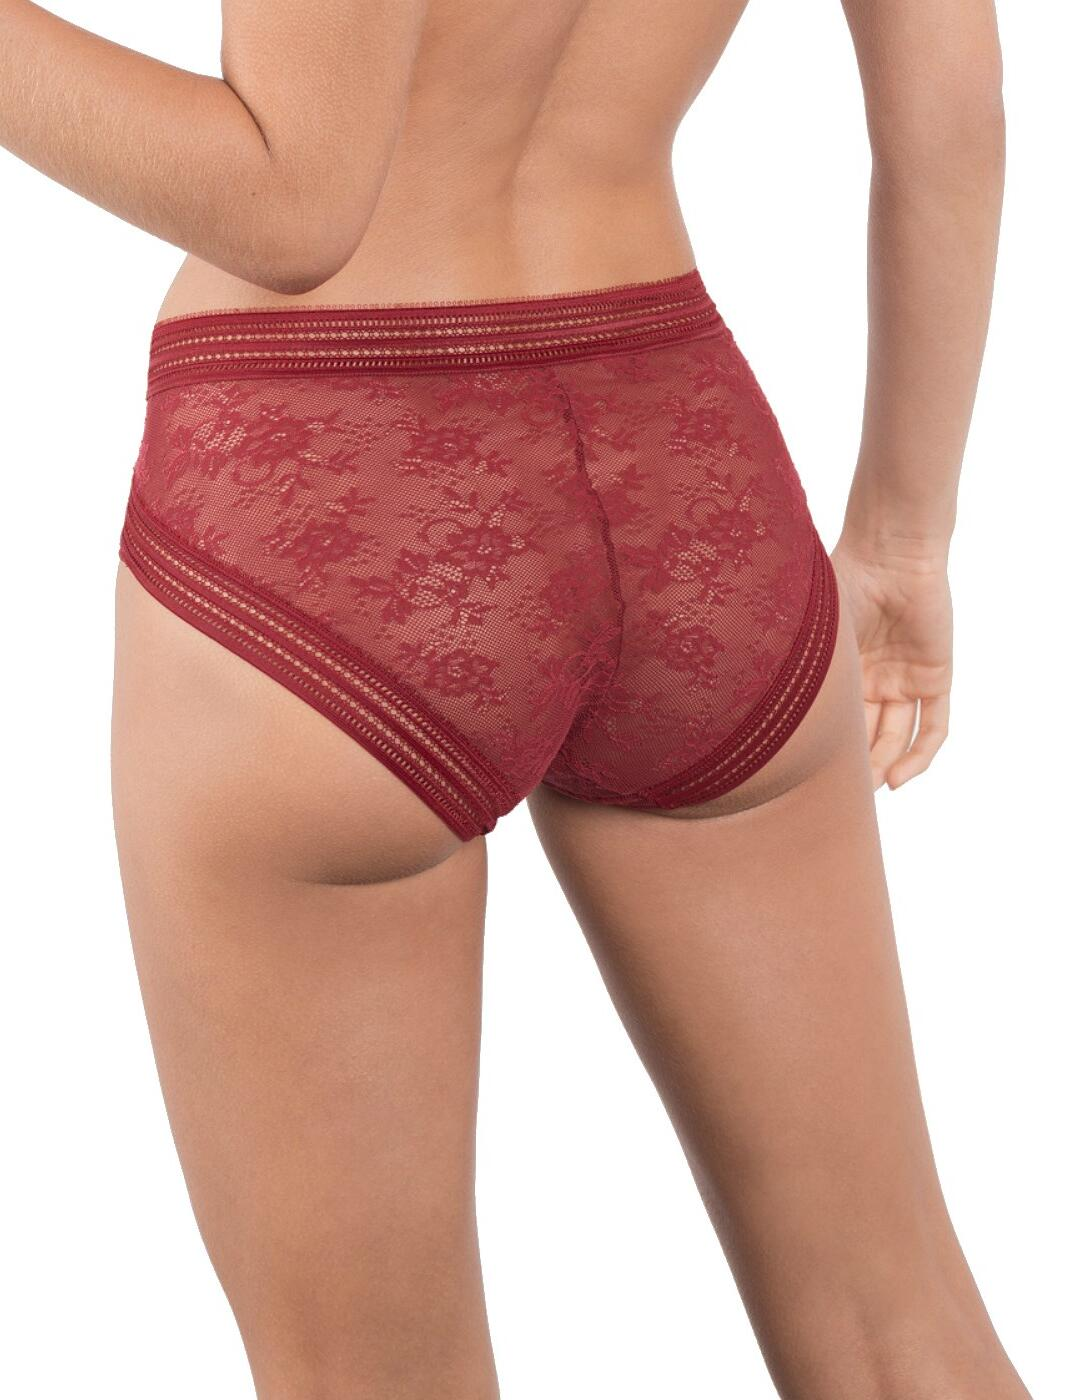 Maison Lejaby Miss Lejaby High Waist Brief 16464 Womens Luxury Knickers Lingerie